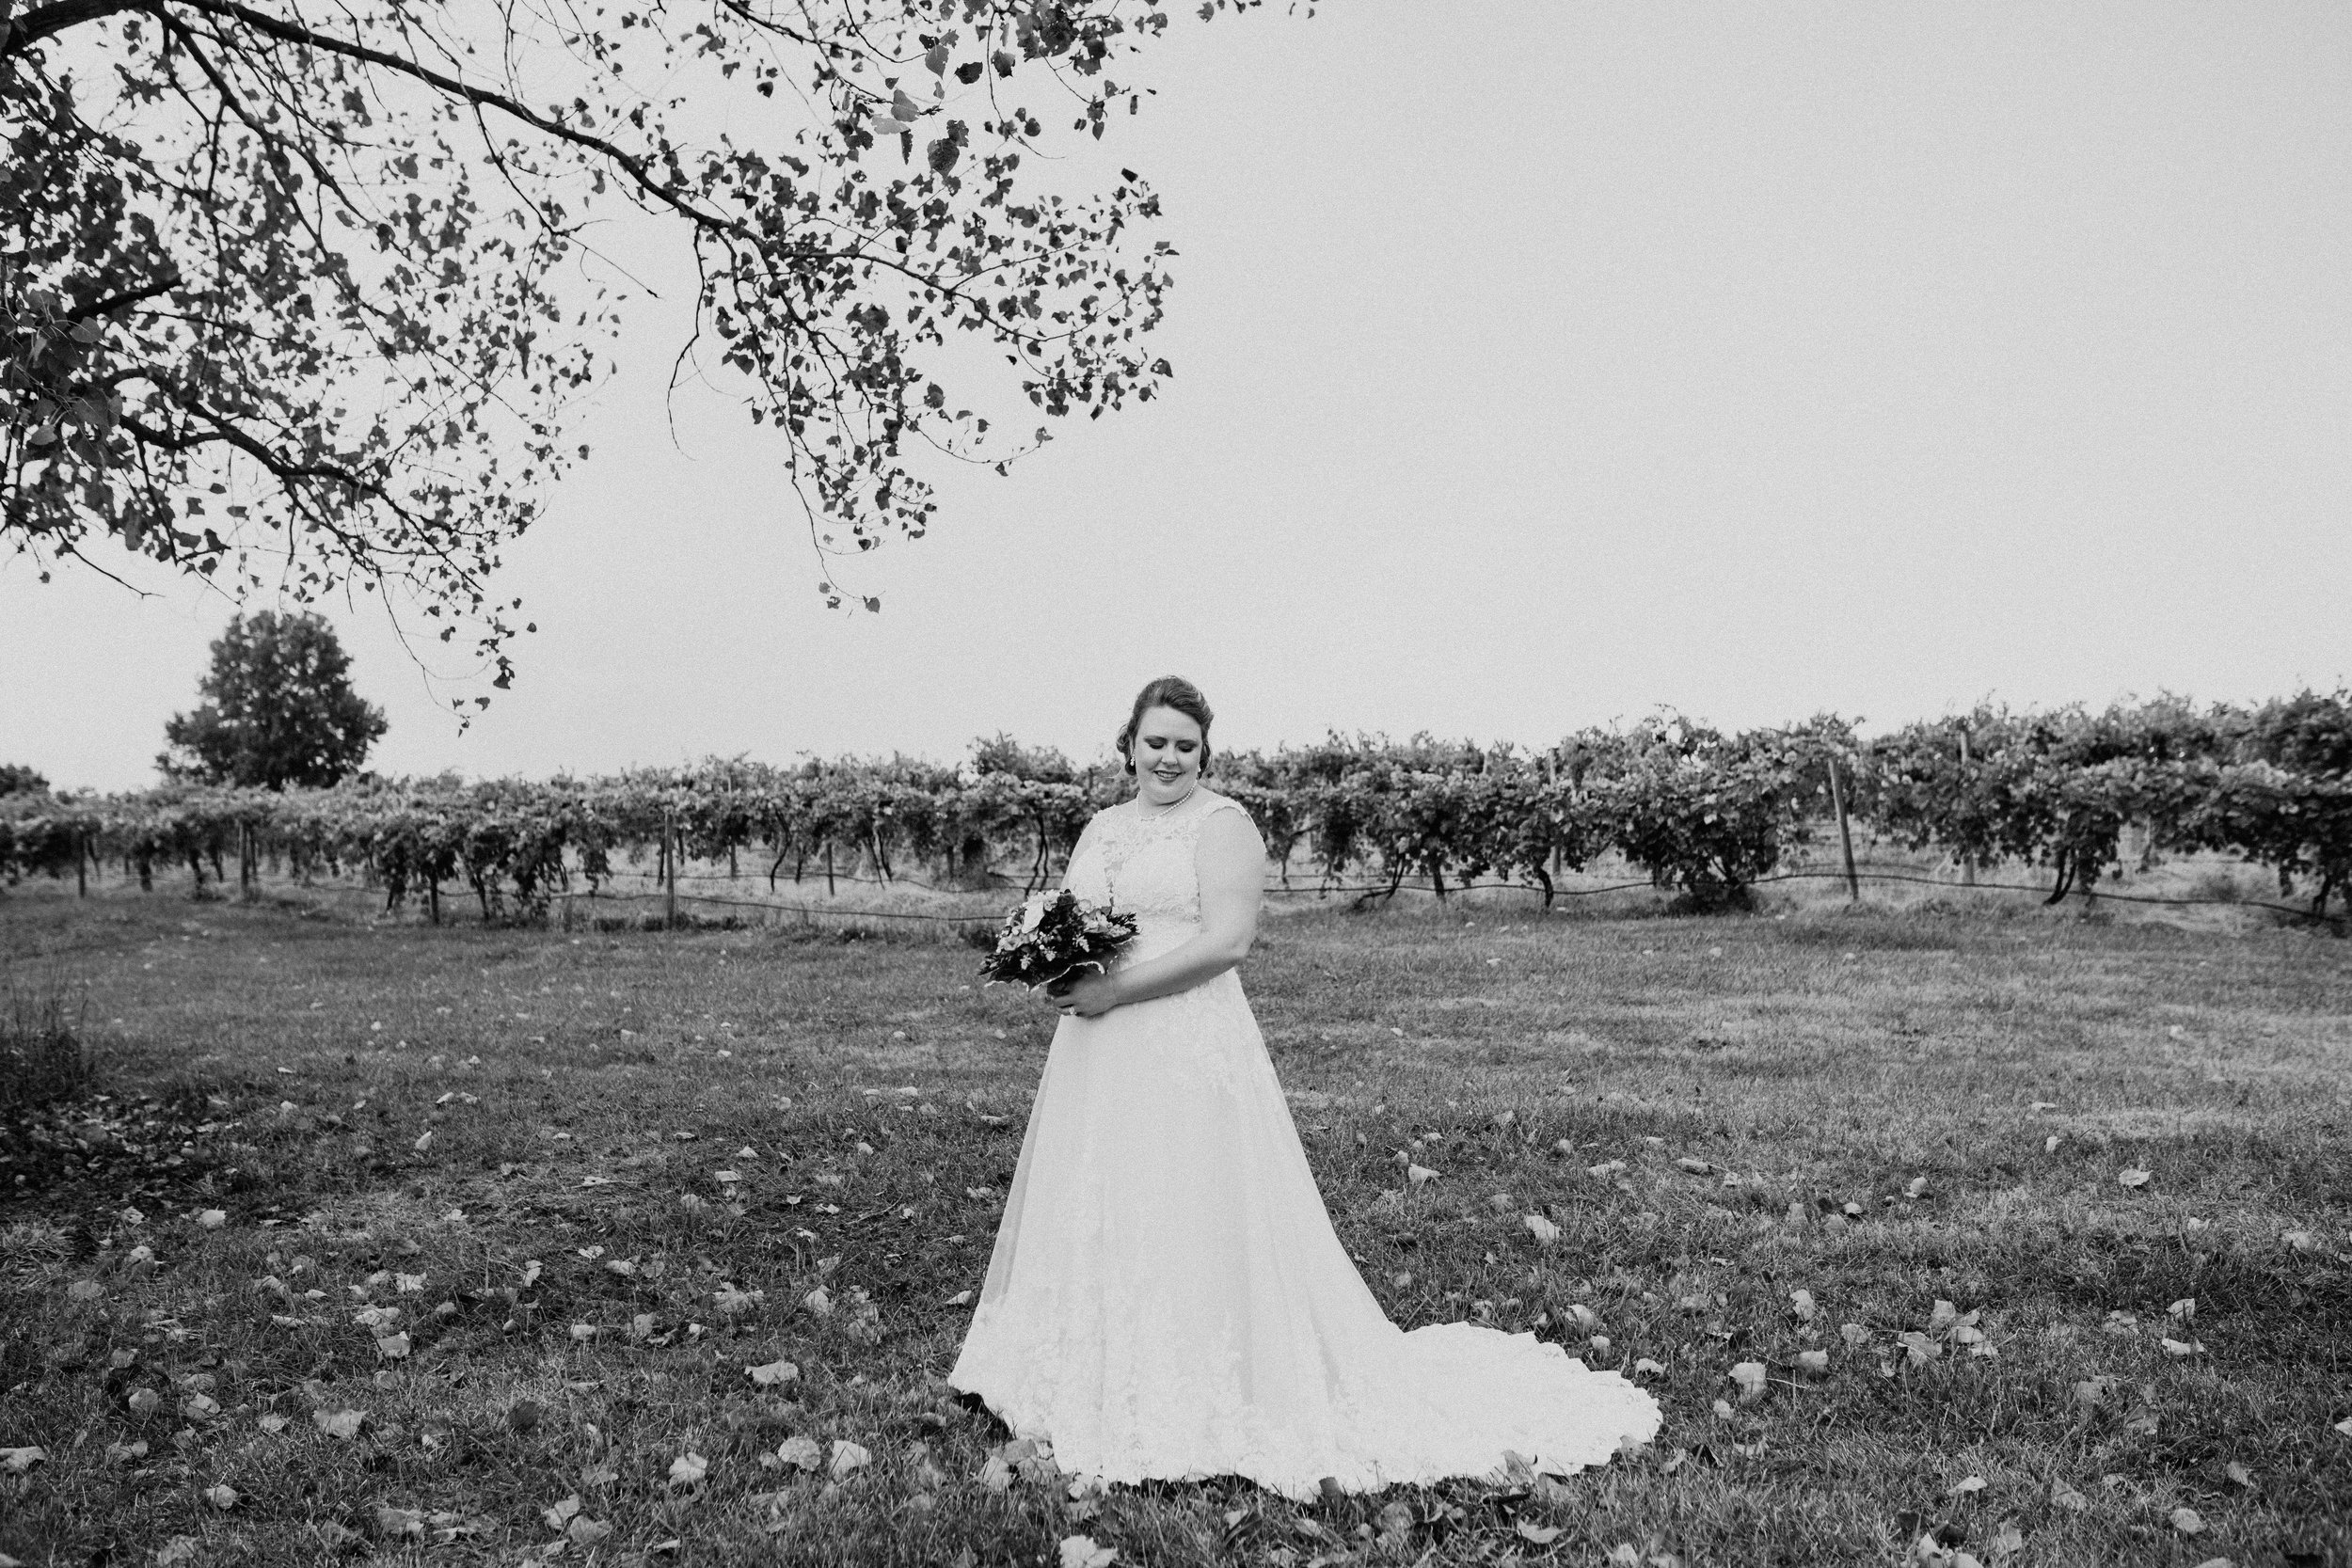 Wedding at Sugar Creek Winery  Maranda and Zac's Wedding Day  Defiance, Missouri  Phoenix Wedding Photographer109.jpg